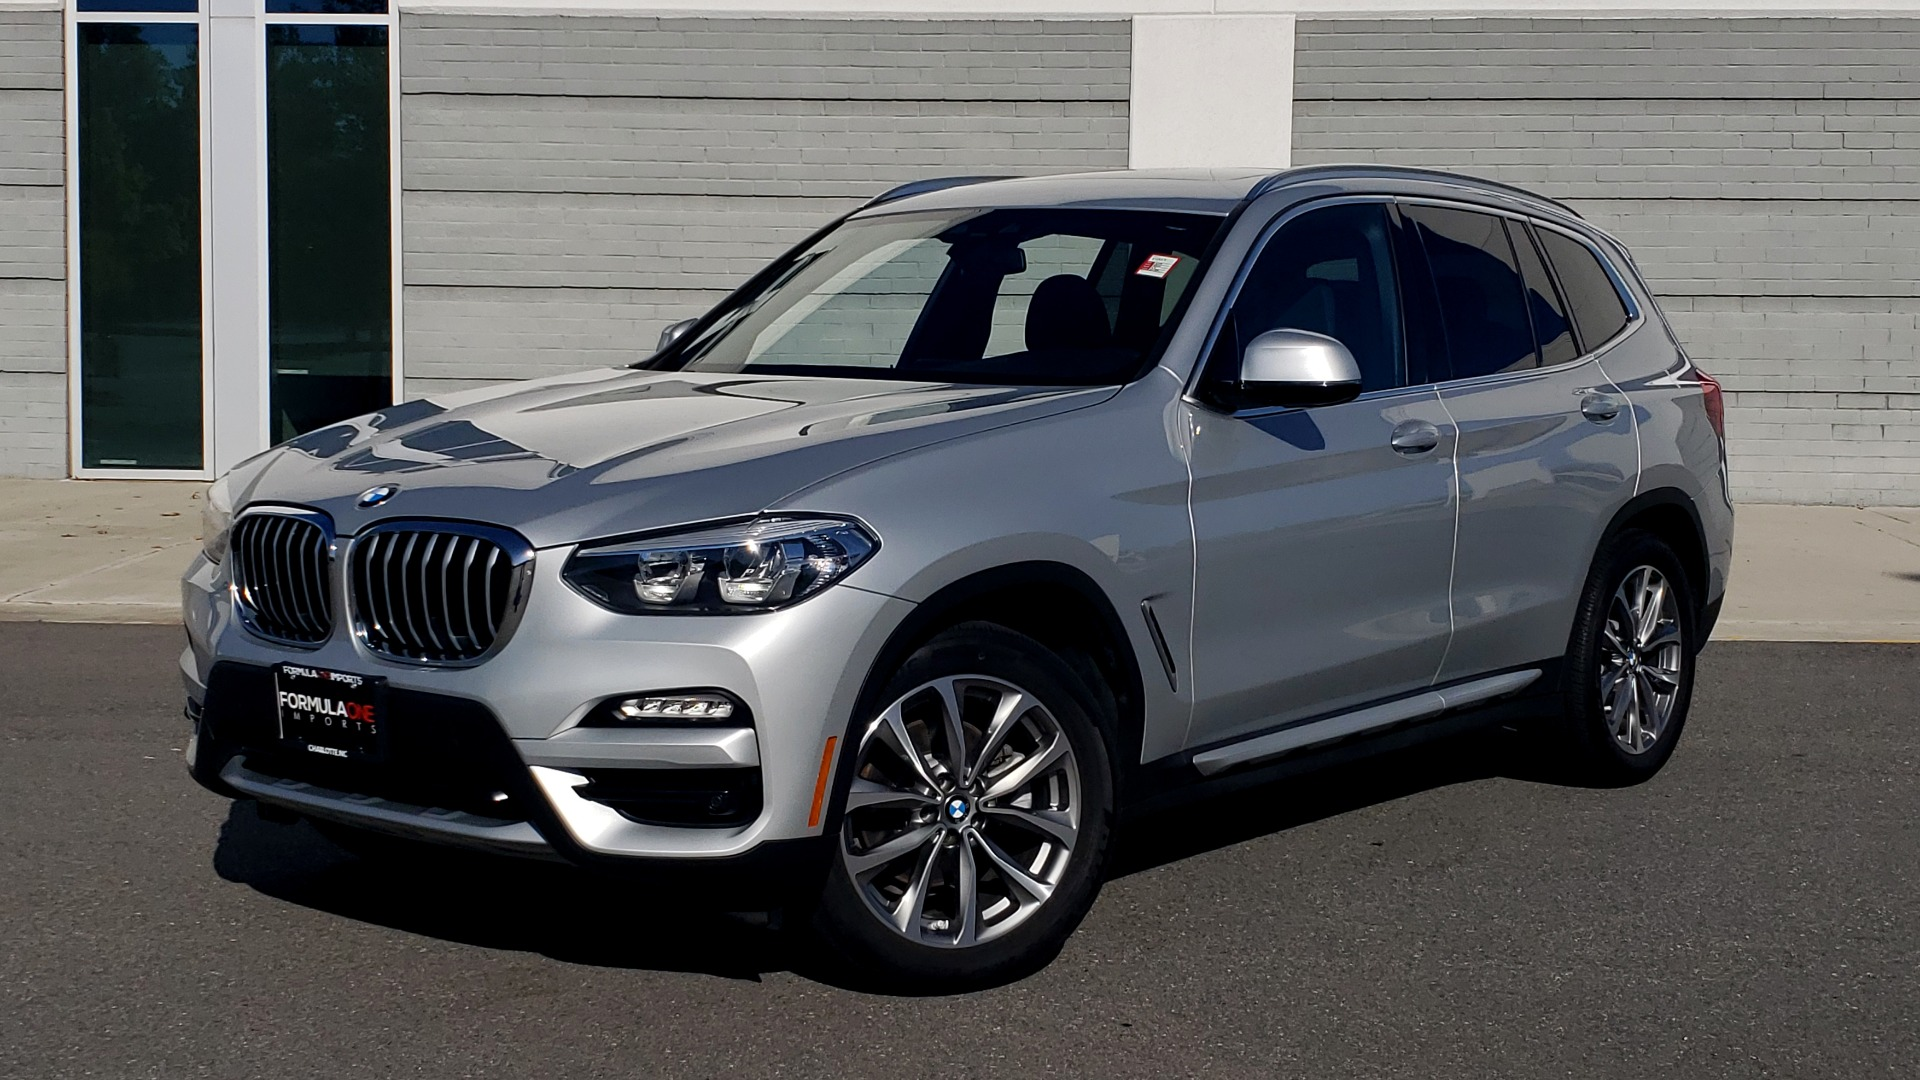 Used 2019 BMW X3 XDRIVE30I / DRVR ASST / PANO-ROOF / HTD STS / REARVIEW for sale $41,995 at Formula Imports in Charlotte NC 28227 1